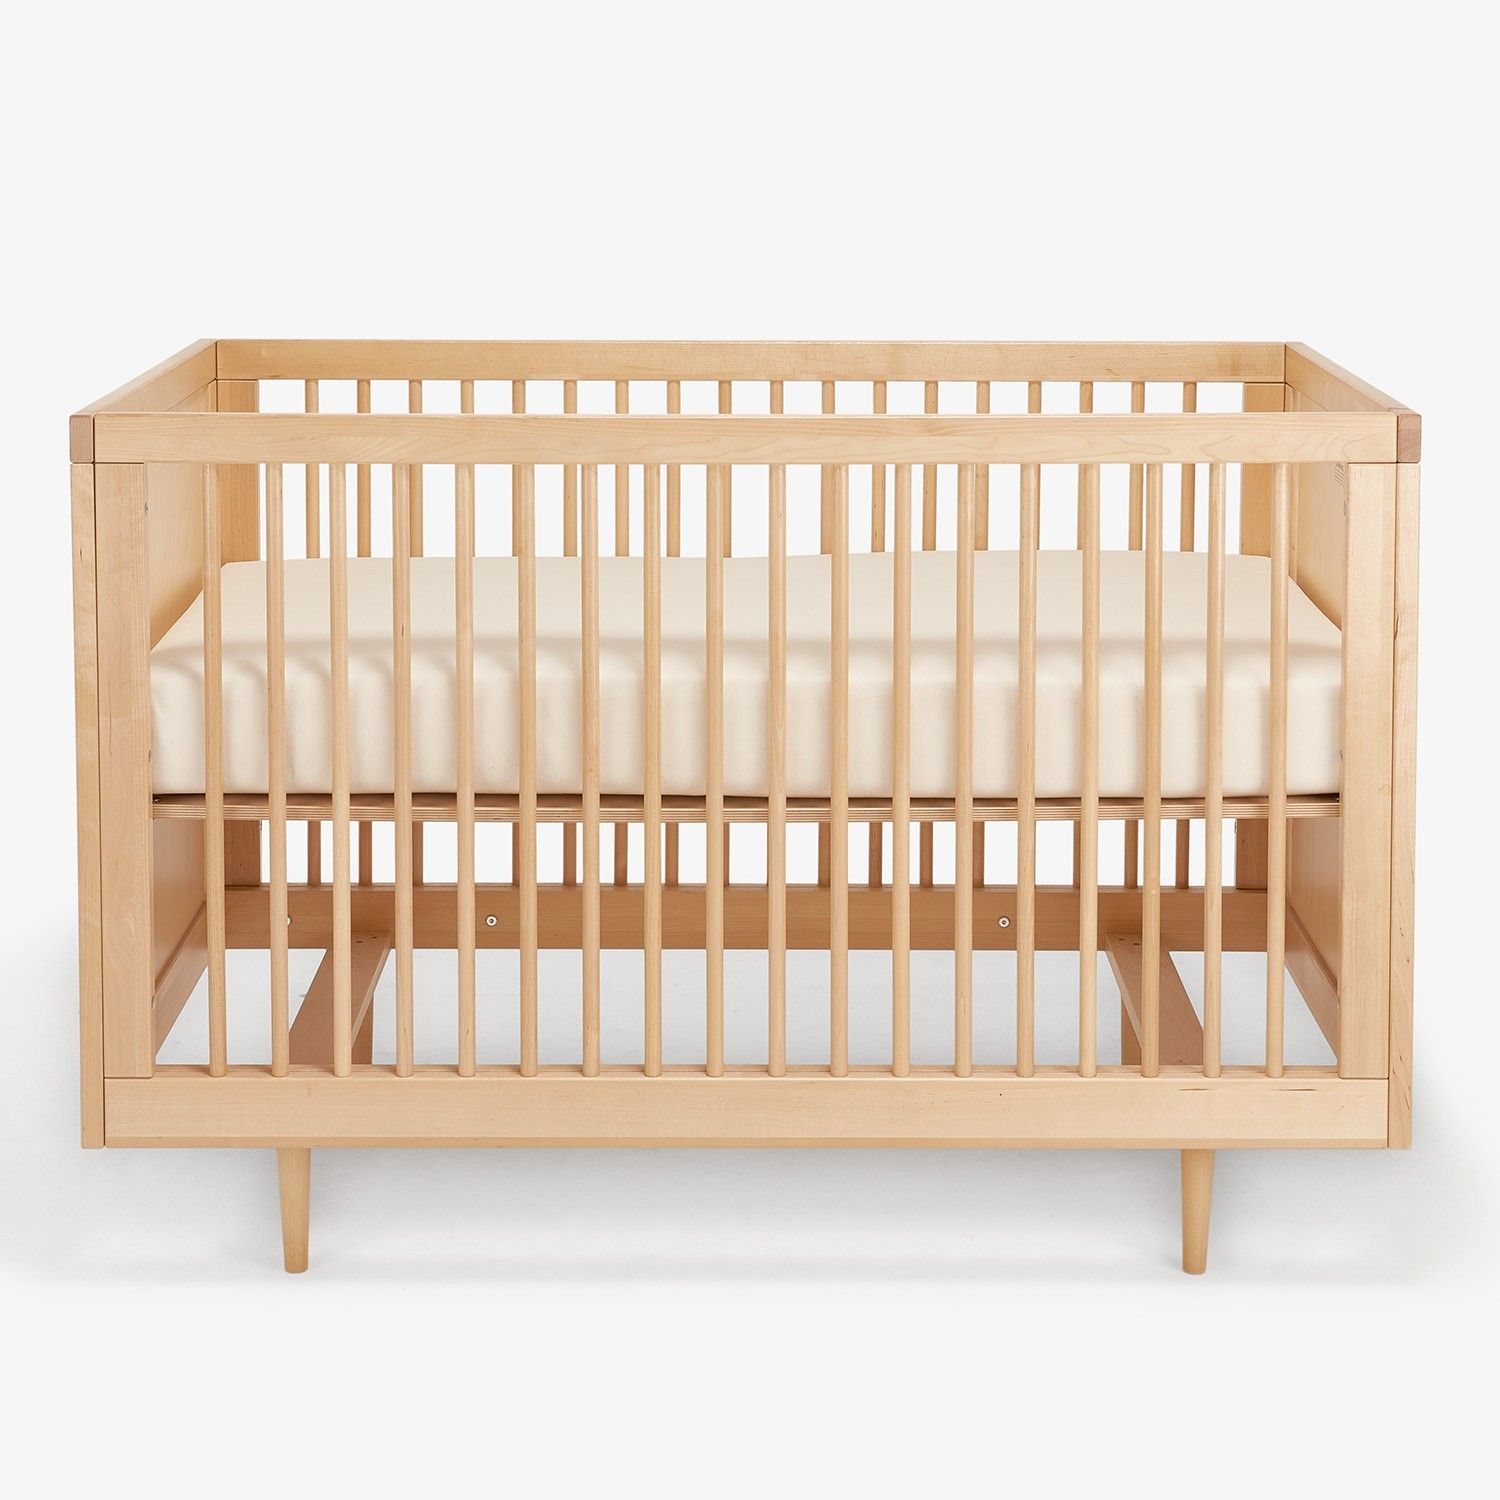 Crafted from sustainably harvested birch wood, the Ulm